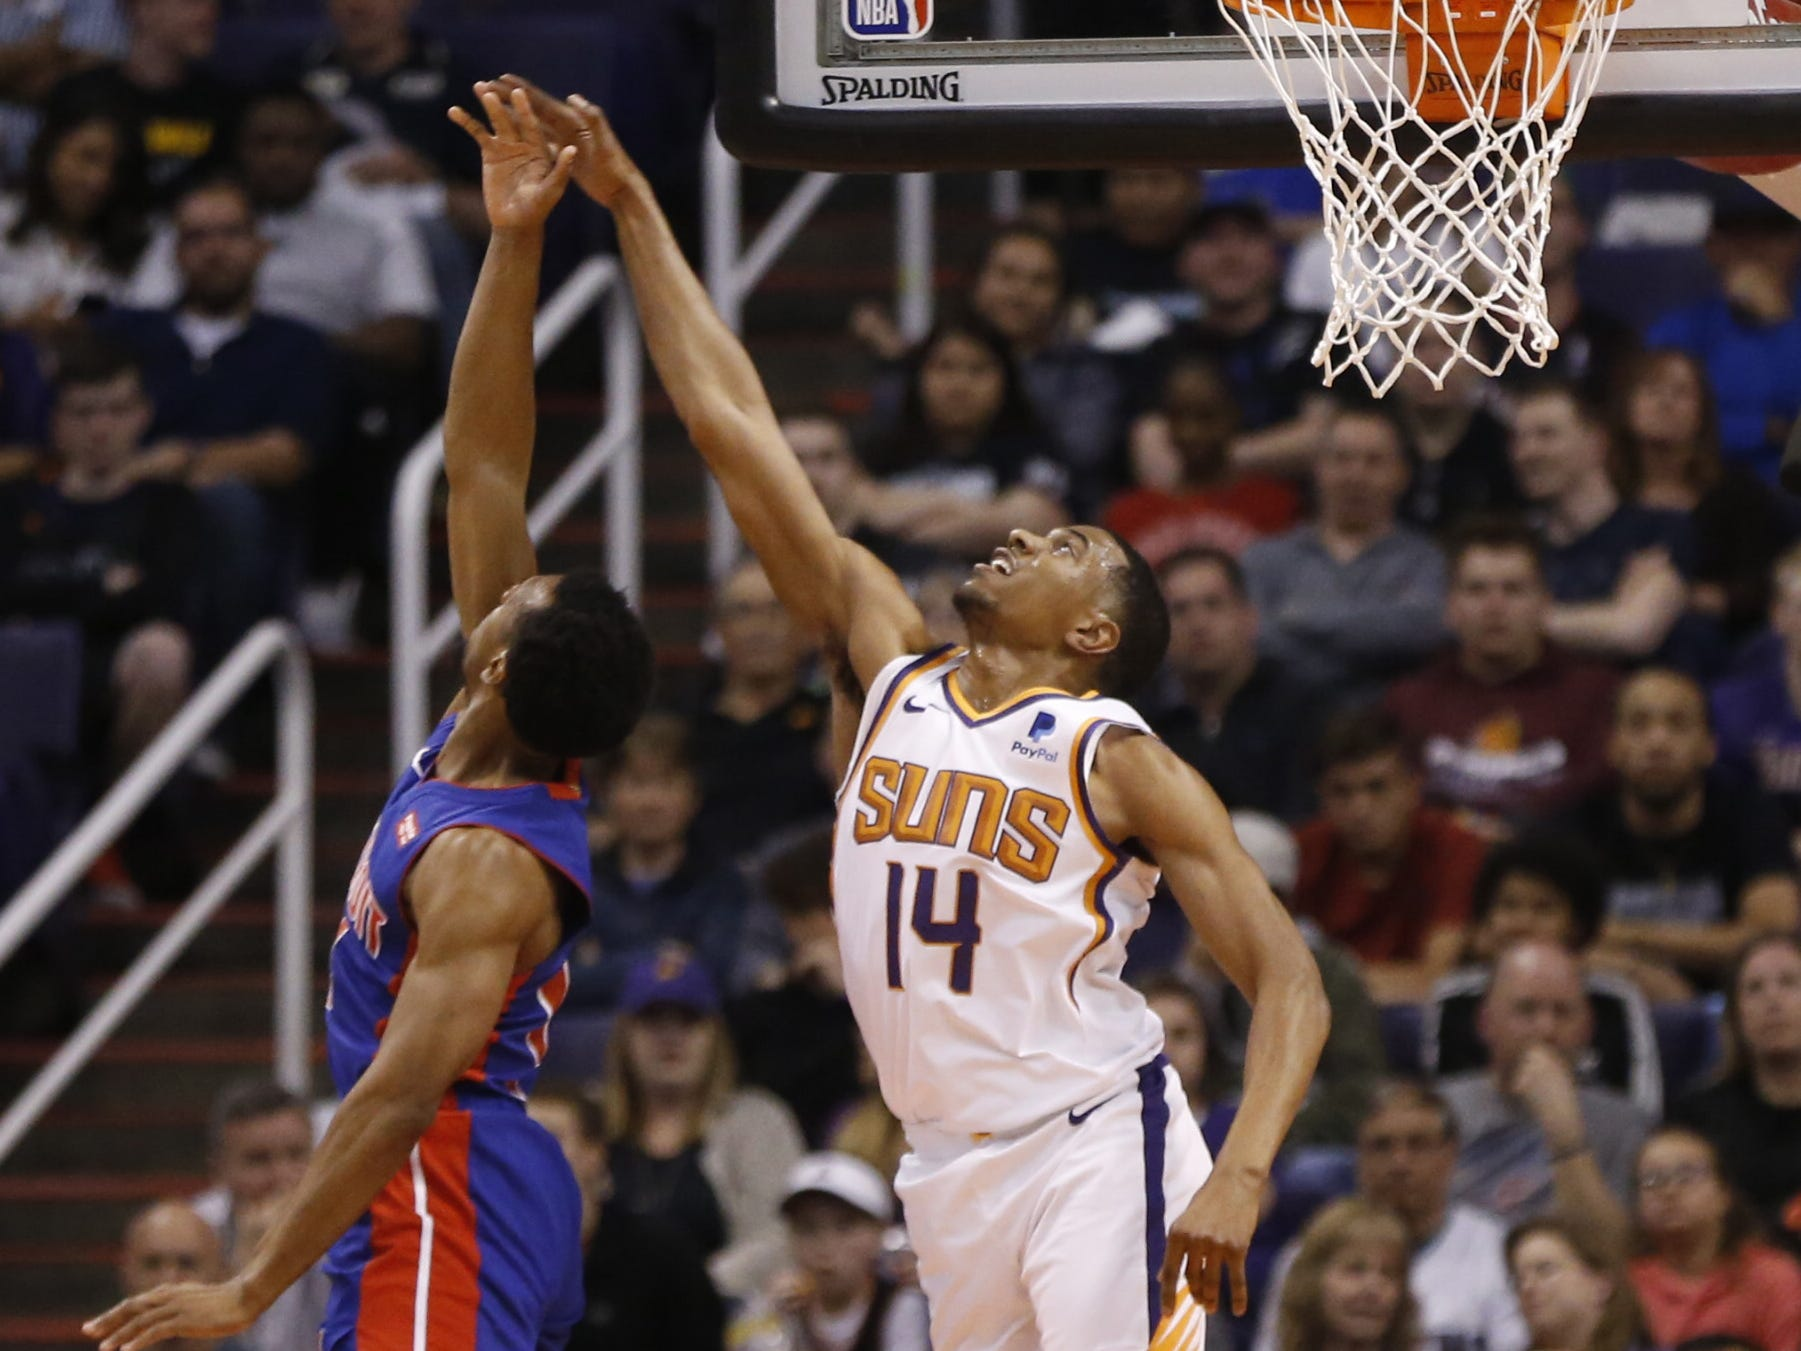 Suns' De'Anthony Melton (14) contests a layup against Pistons' Ish Smith during the first half at the Talking Stick Resort Arena in Phoenix, Ariz. on March 21, 2019.